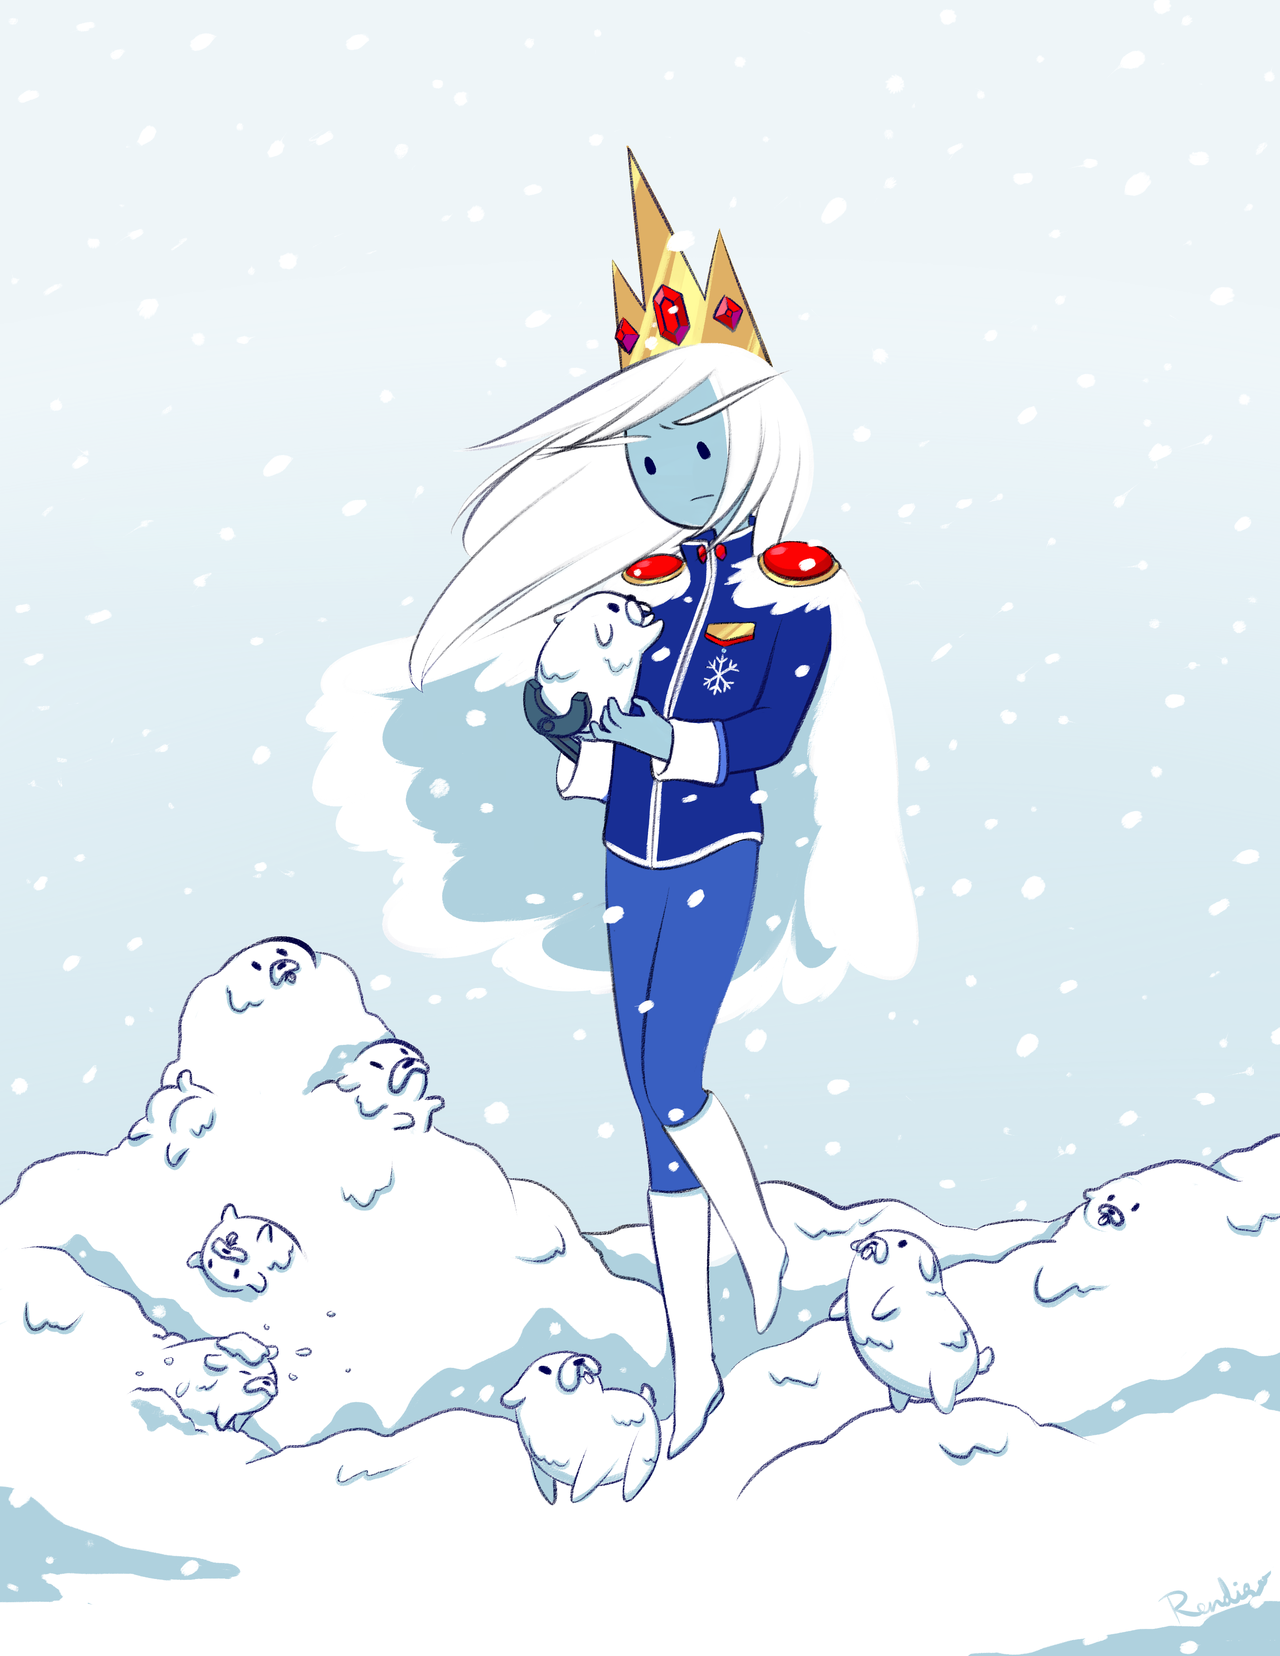 Pin By Heidi Vogt On Adventure Time Ice Queen Adventure Time Adventure Time Anime Ice King Adventure Time